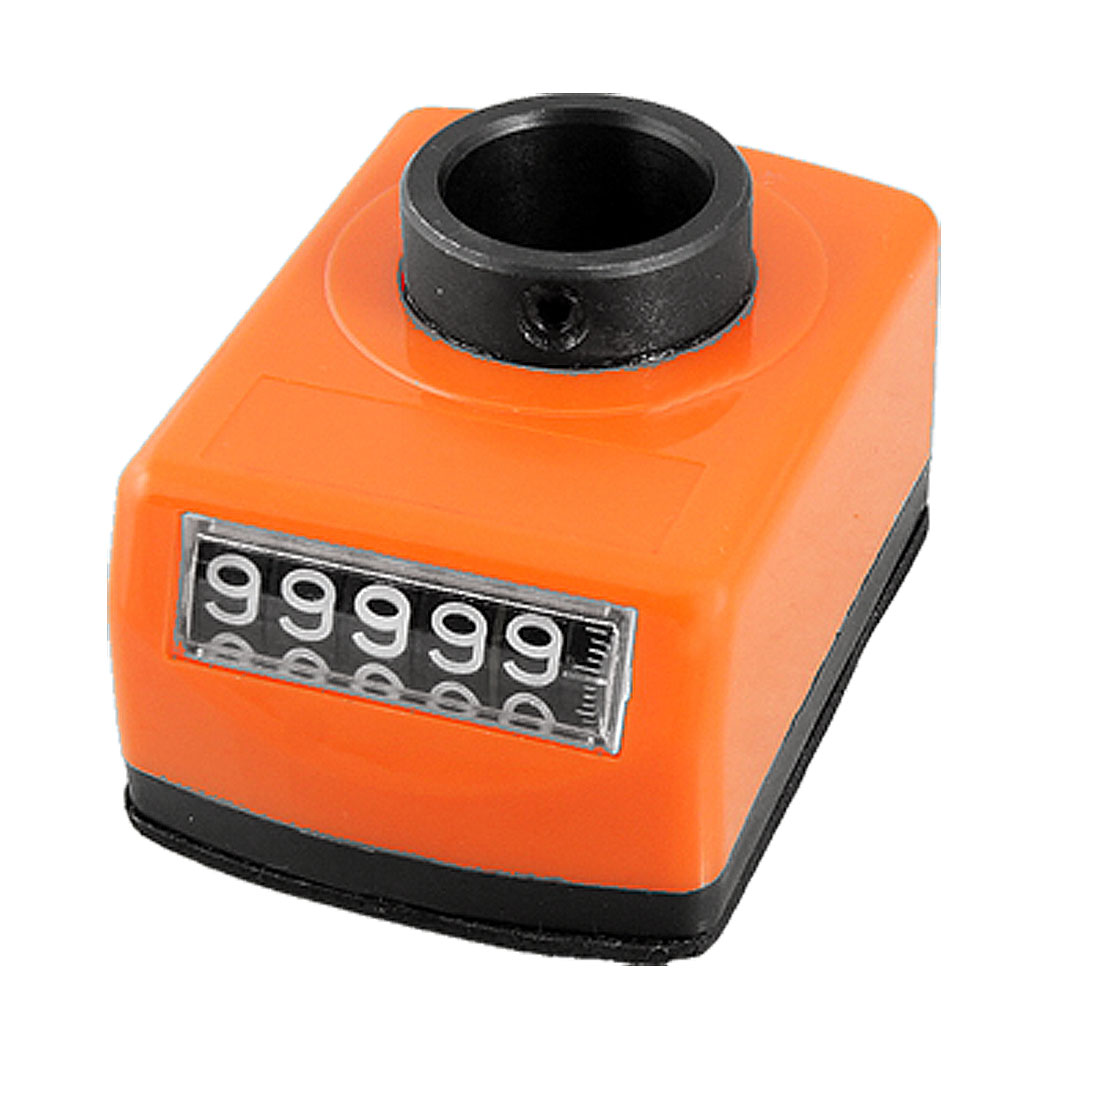 2.0mm Axial Pitch Orange Plastic Housing 0-99999 Range Digital Indicator